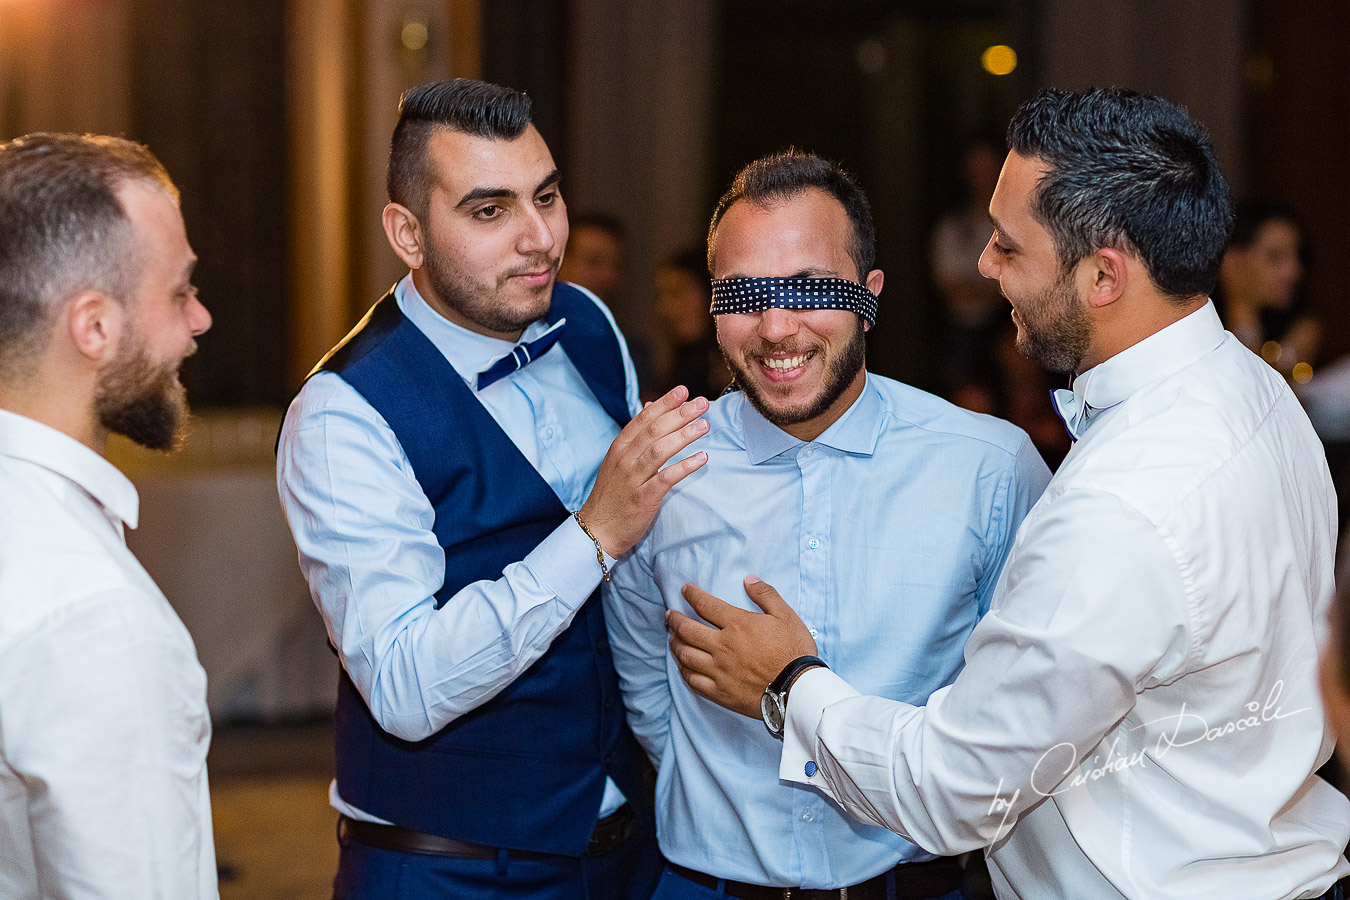 Moment when the groom is prepared for the garter photographed as part of an Exclusive Wedding photography at Grand Resort Limassol, captured by Cyprus Wedding Photographer Cristian Dascalu.